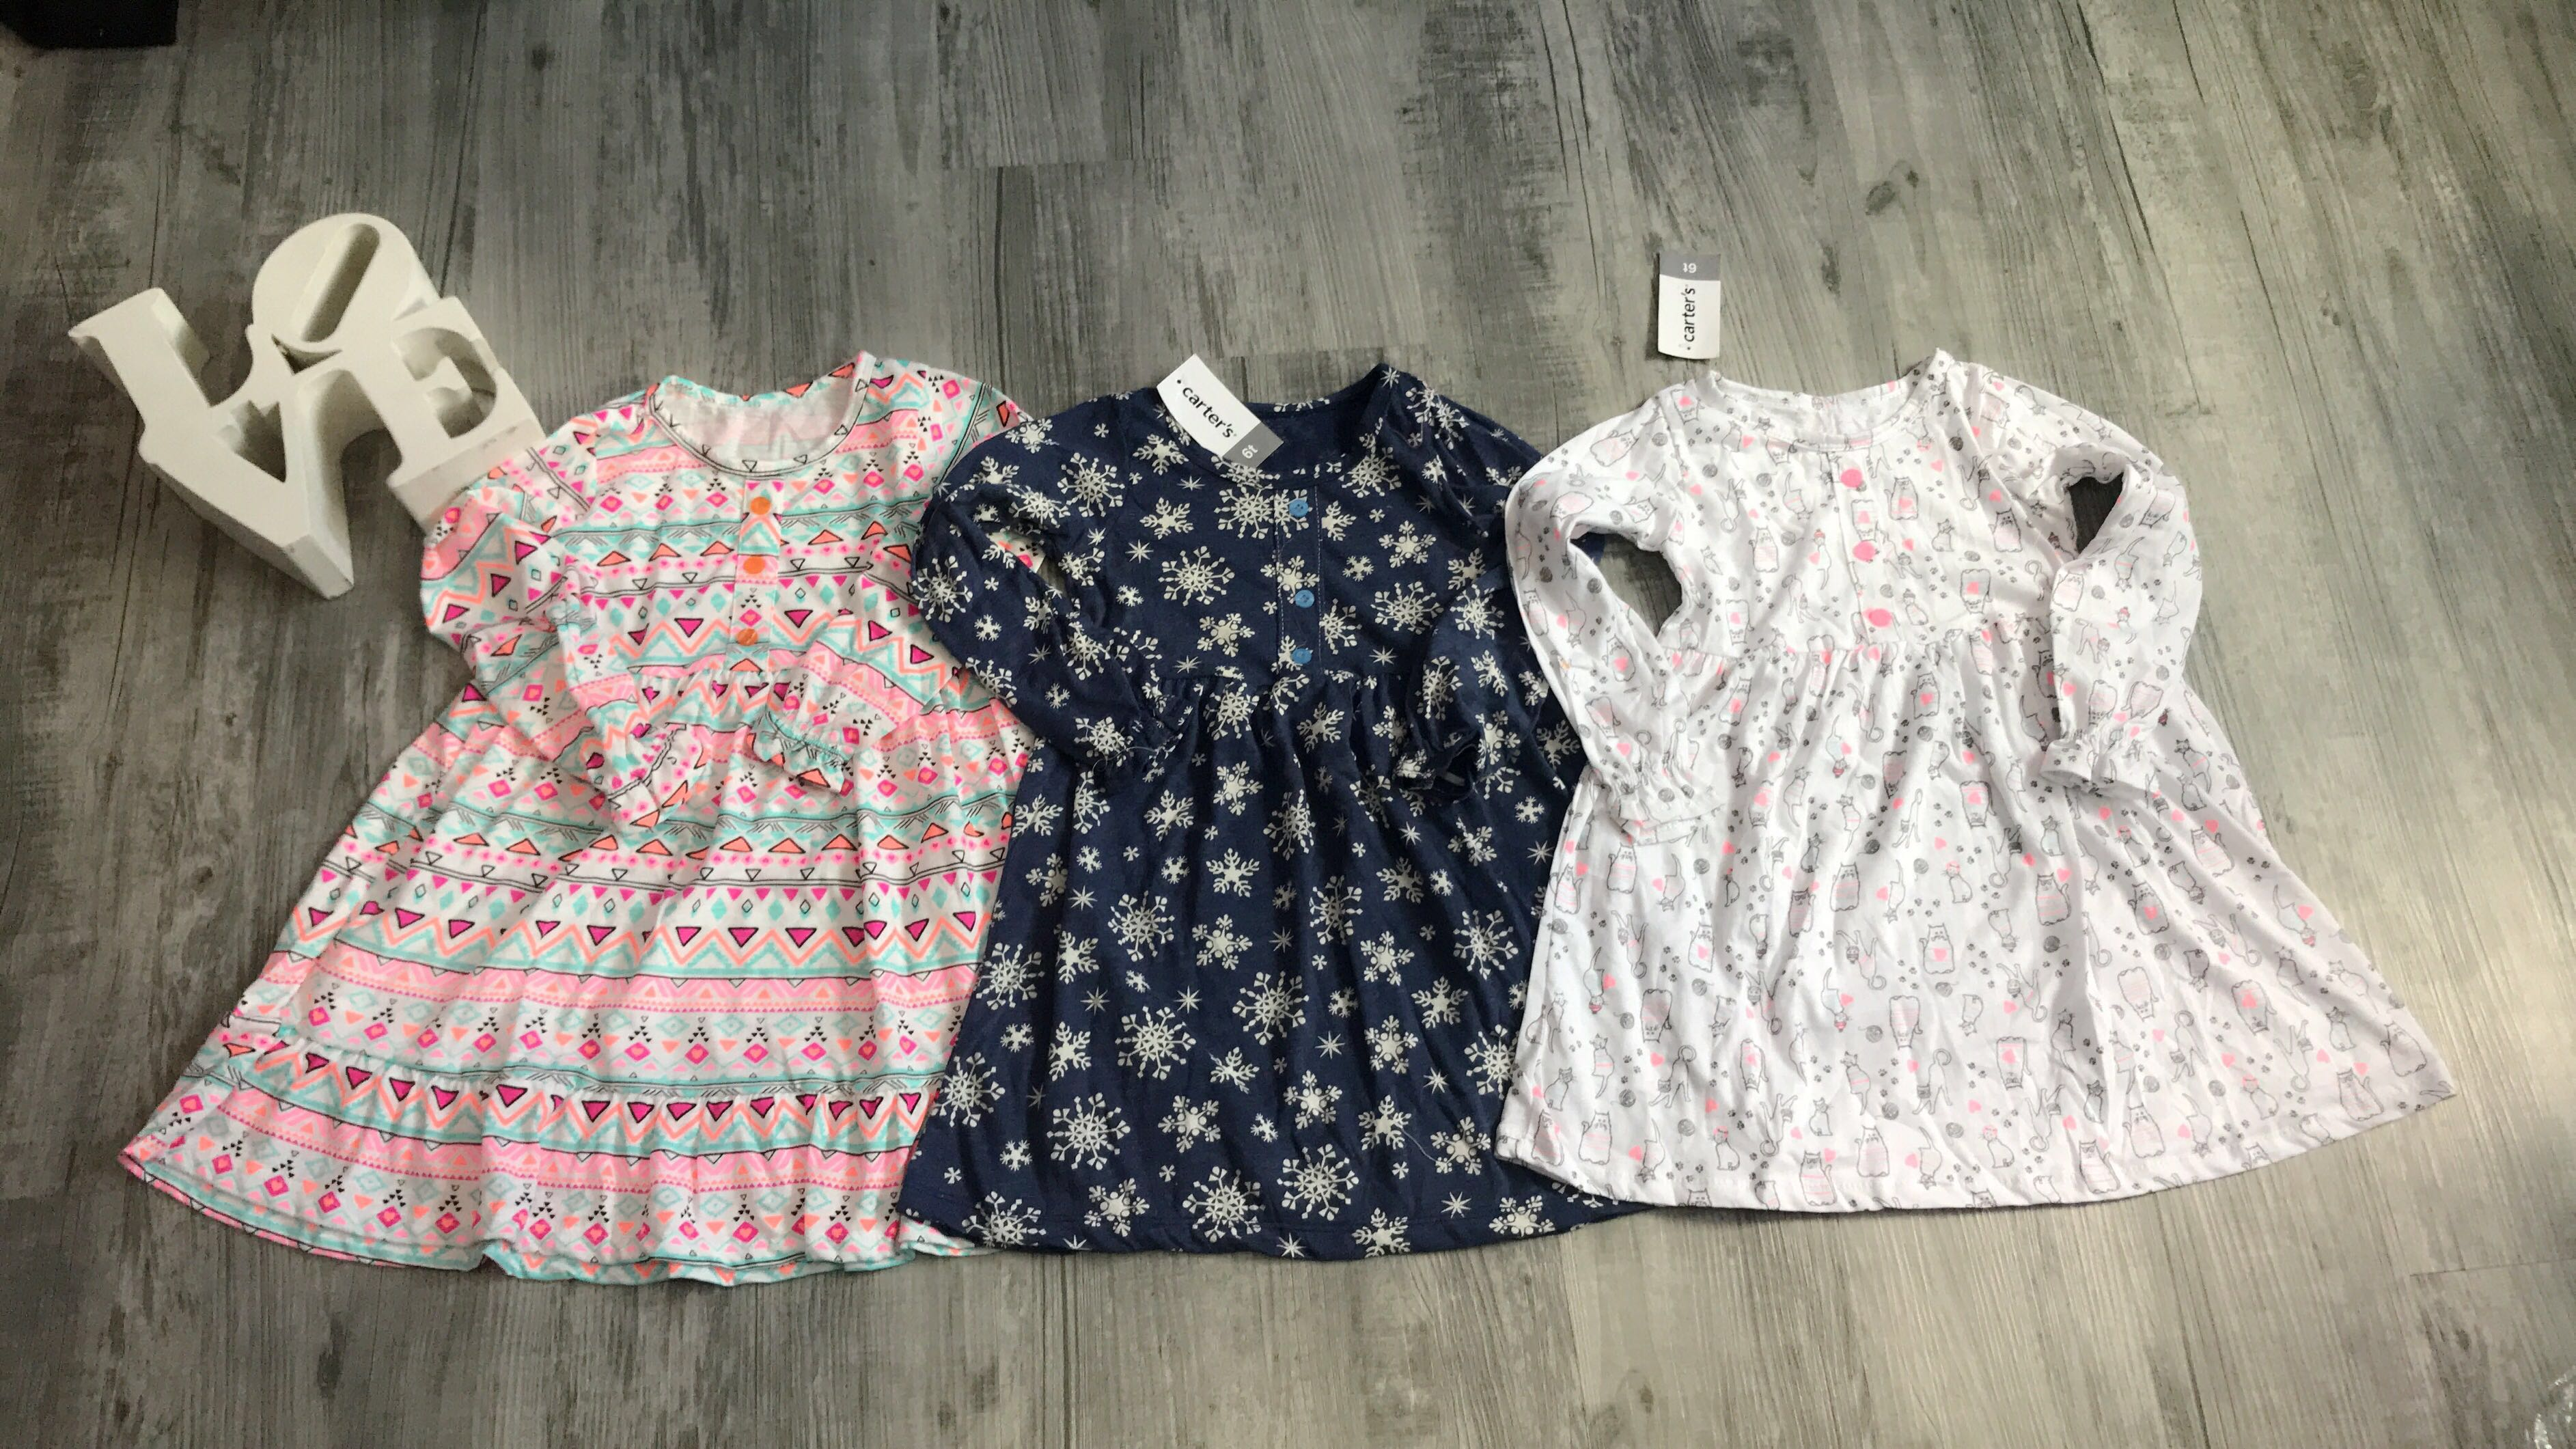 44c20881a57dd Carter's Baby Girl Dress, Babies & Kids, Girls' Apparel, 4 to 7 Years on  Carousell